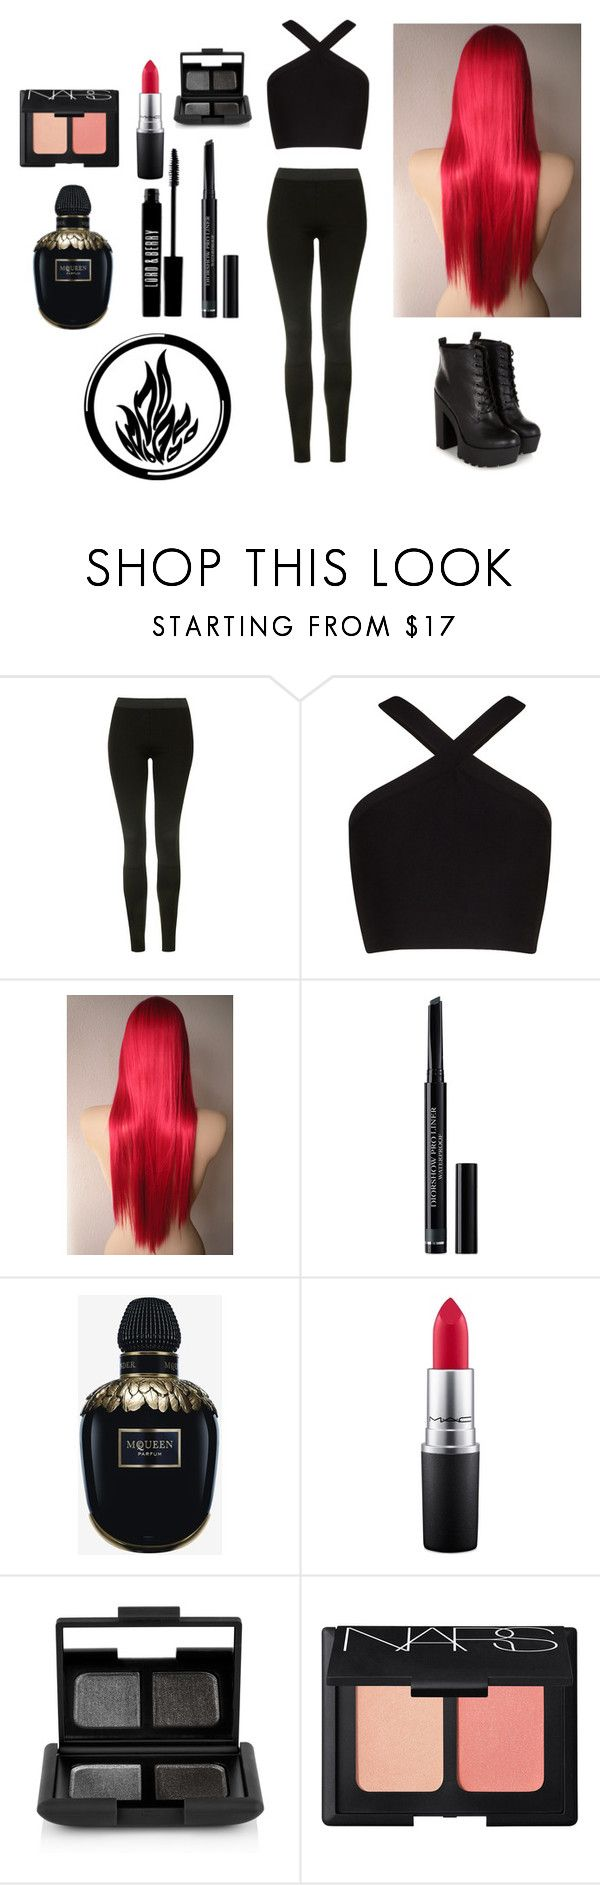 """""""Me in divergent (dauntless)"""" by harrypotter-gurl ❤ liked on Polyvore featuring Topshop, BCBGMAXAZRIA, Christian Dior, Alexander McQueen, Lord & Berry, MAC Cosmetics and NARS Cosmetics"""